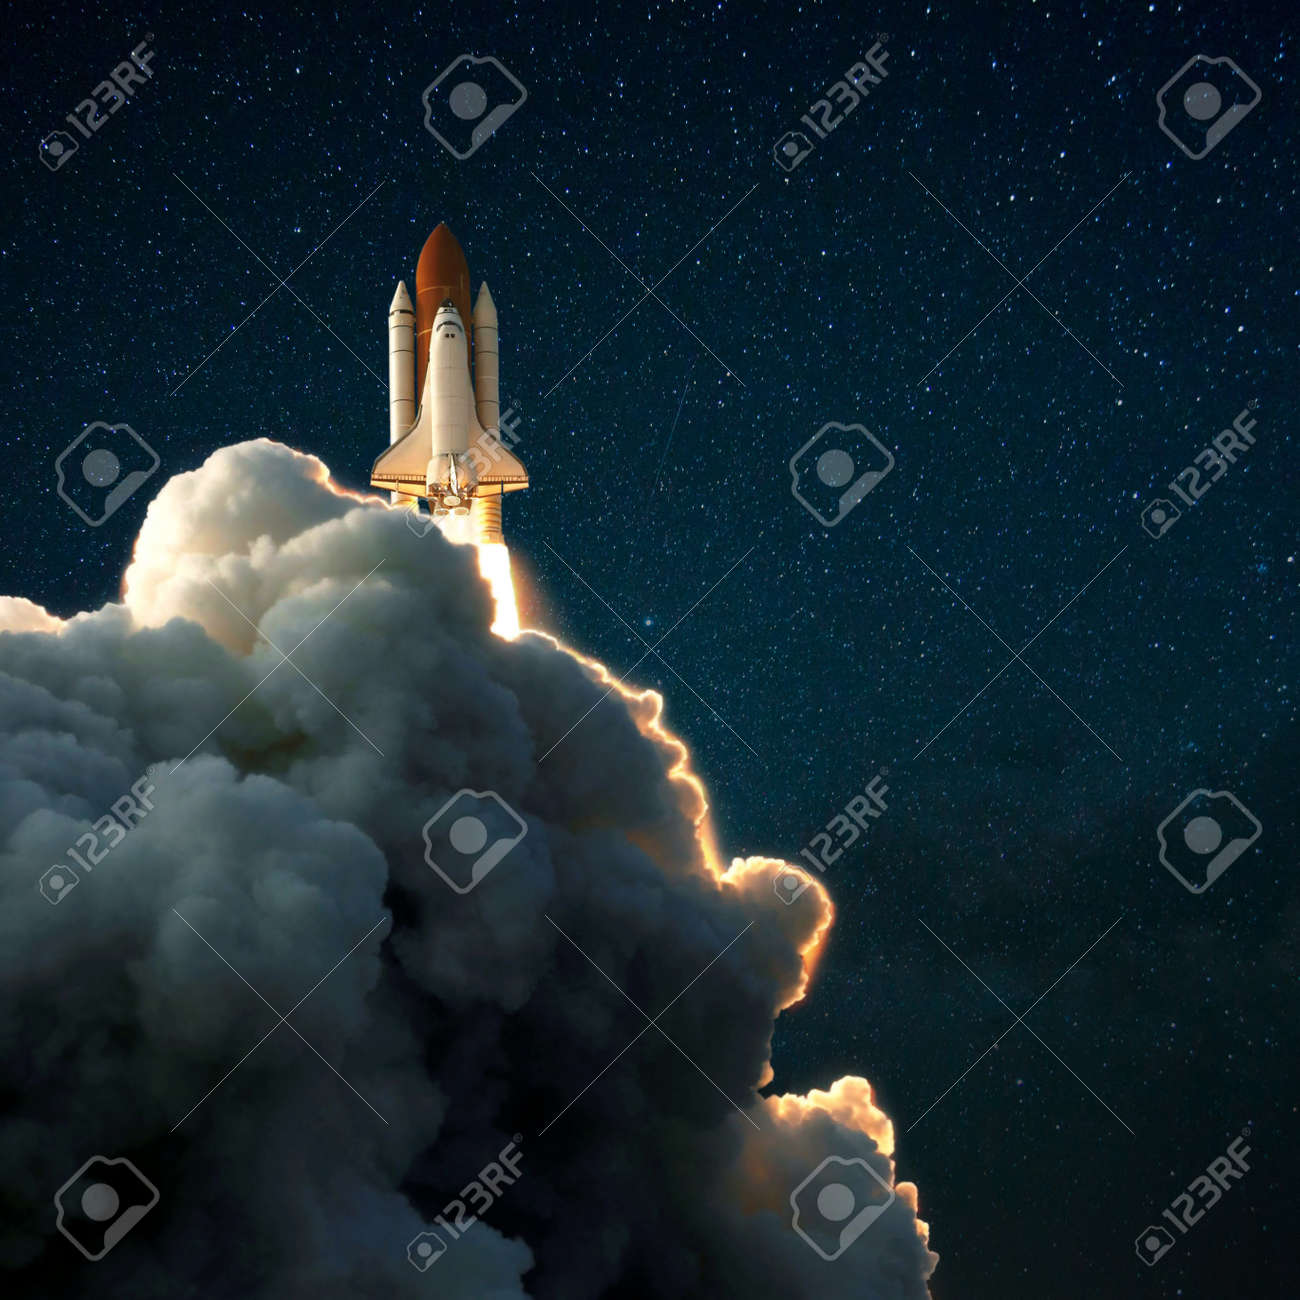 Space rocket shuttle takes off into the starry sky, Spaceship explores space - 120759189